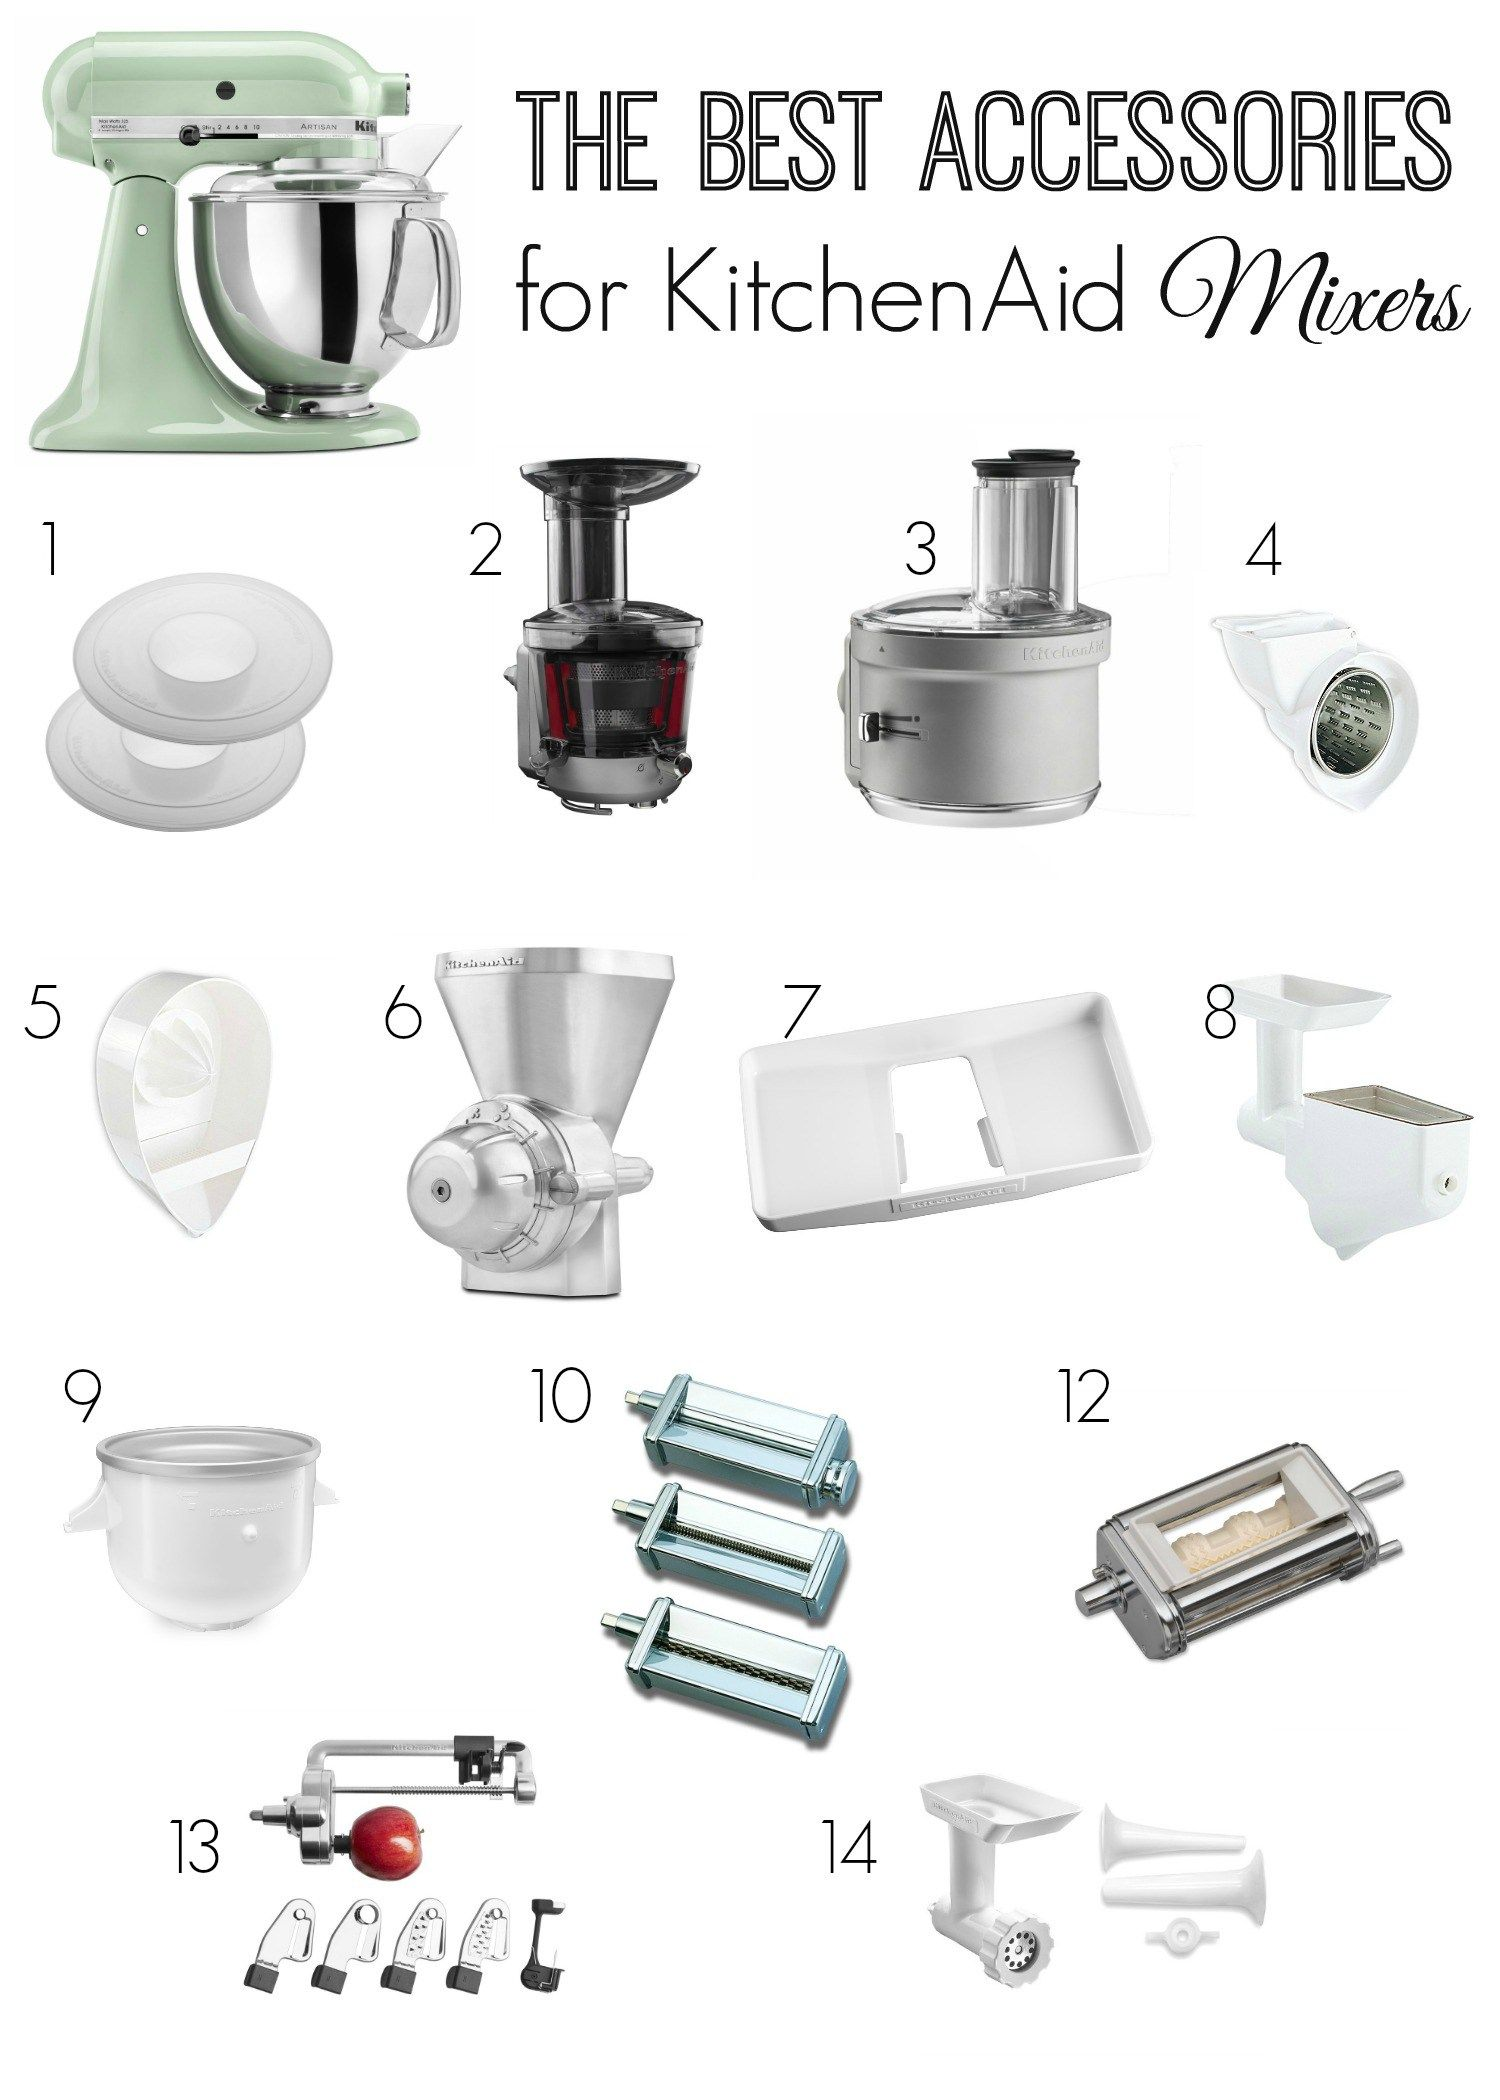 Kitchenaid Küchenhelfer Best Accessories For Kitchenaid Mixers The Naughty Mommy Home